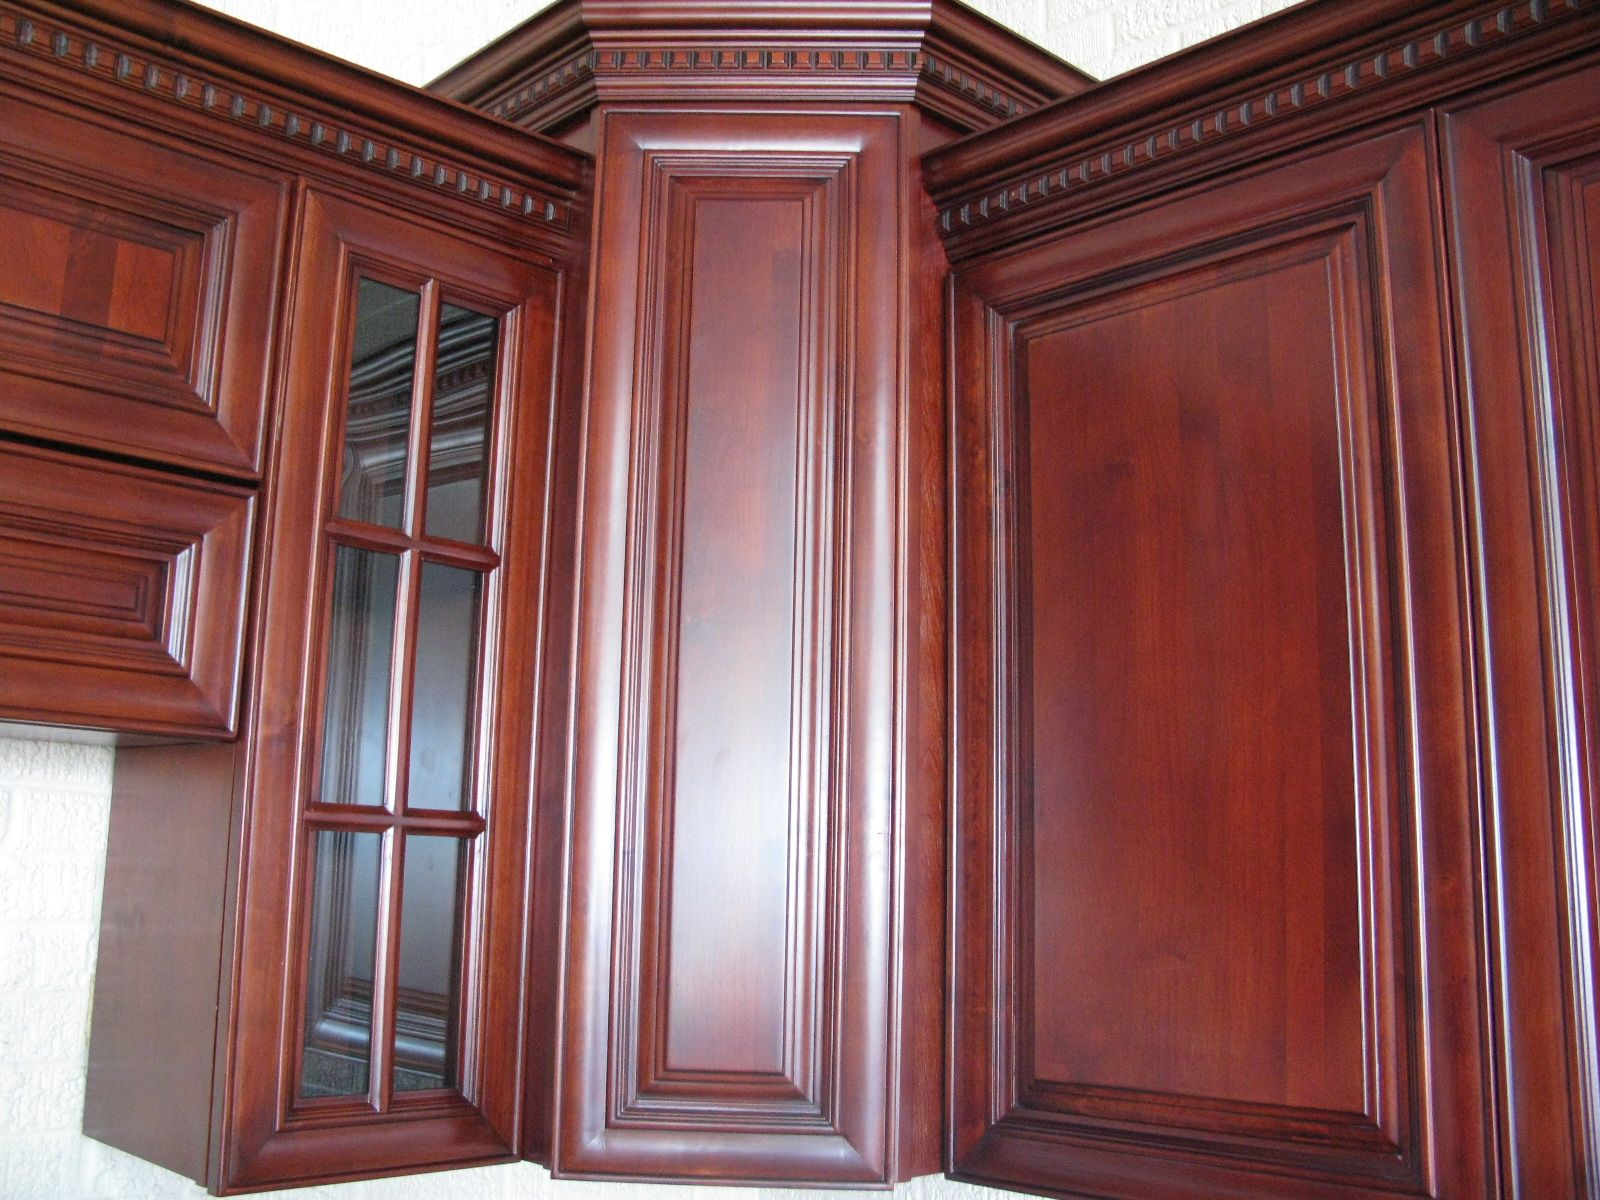 Cherry Maple Cabinets, Crown Molding With Dentil Detail Added, Deep Corner  Cabinet Is Easier To Access, Glass Doors To Upgrade Any Wall Cabinet